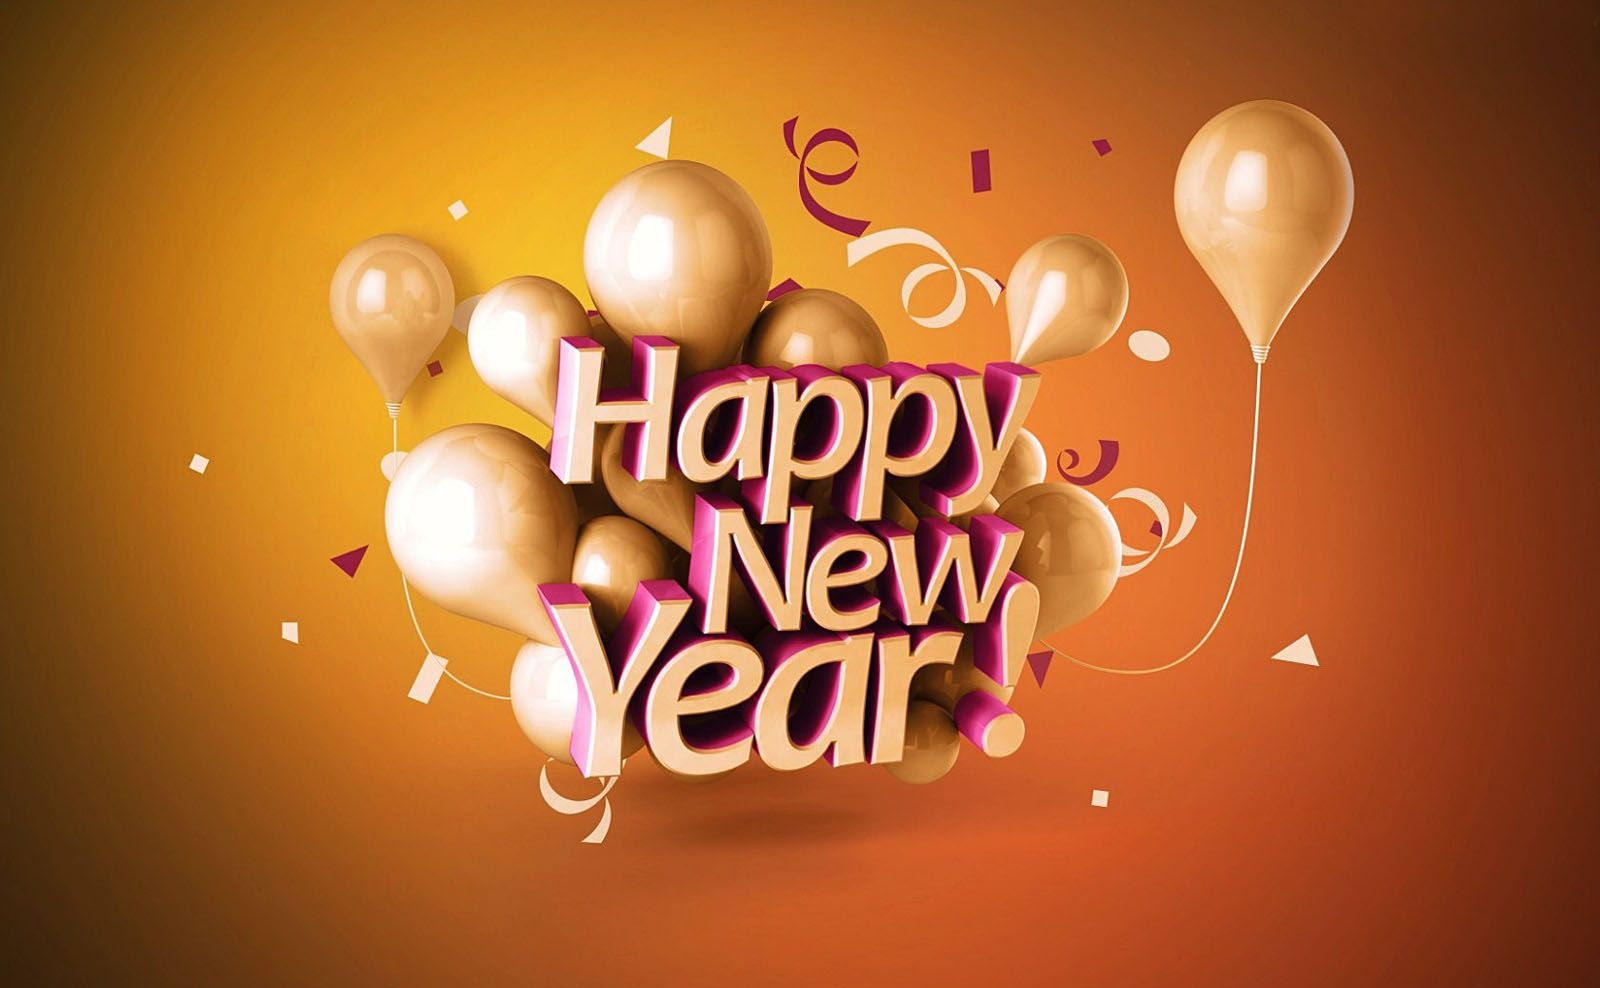 60 Beautiful 2020 New Year Wallpapers for your desktop Happy new 1600x988